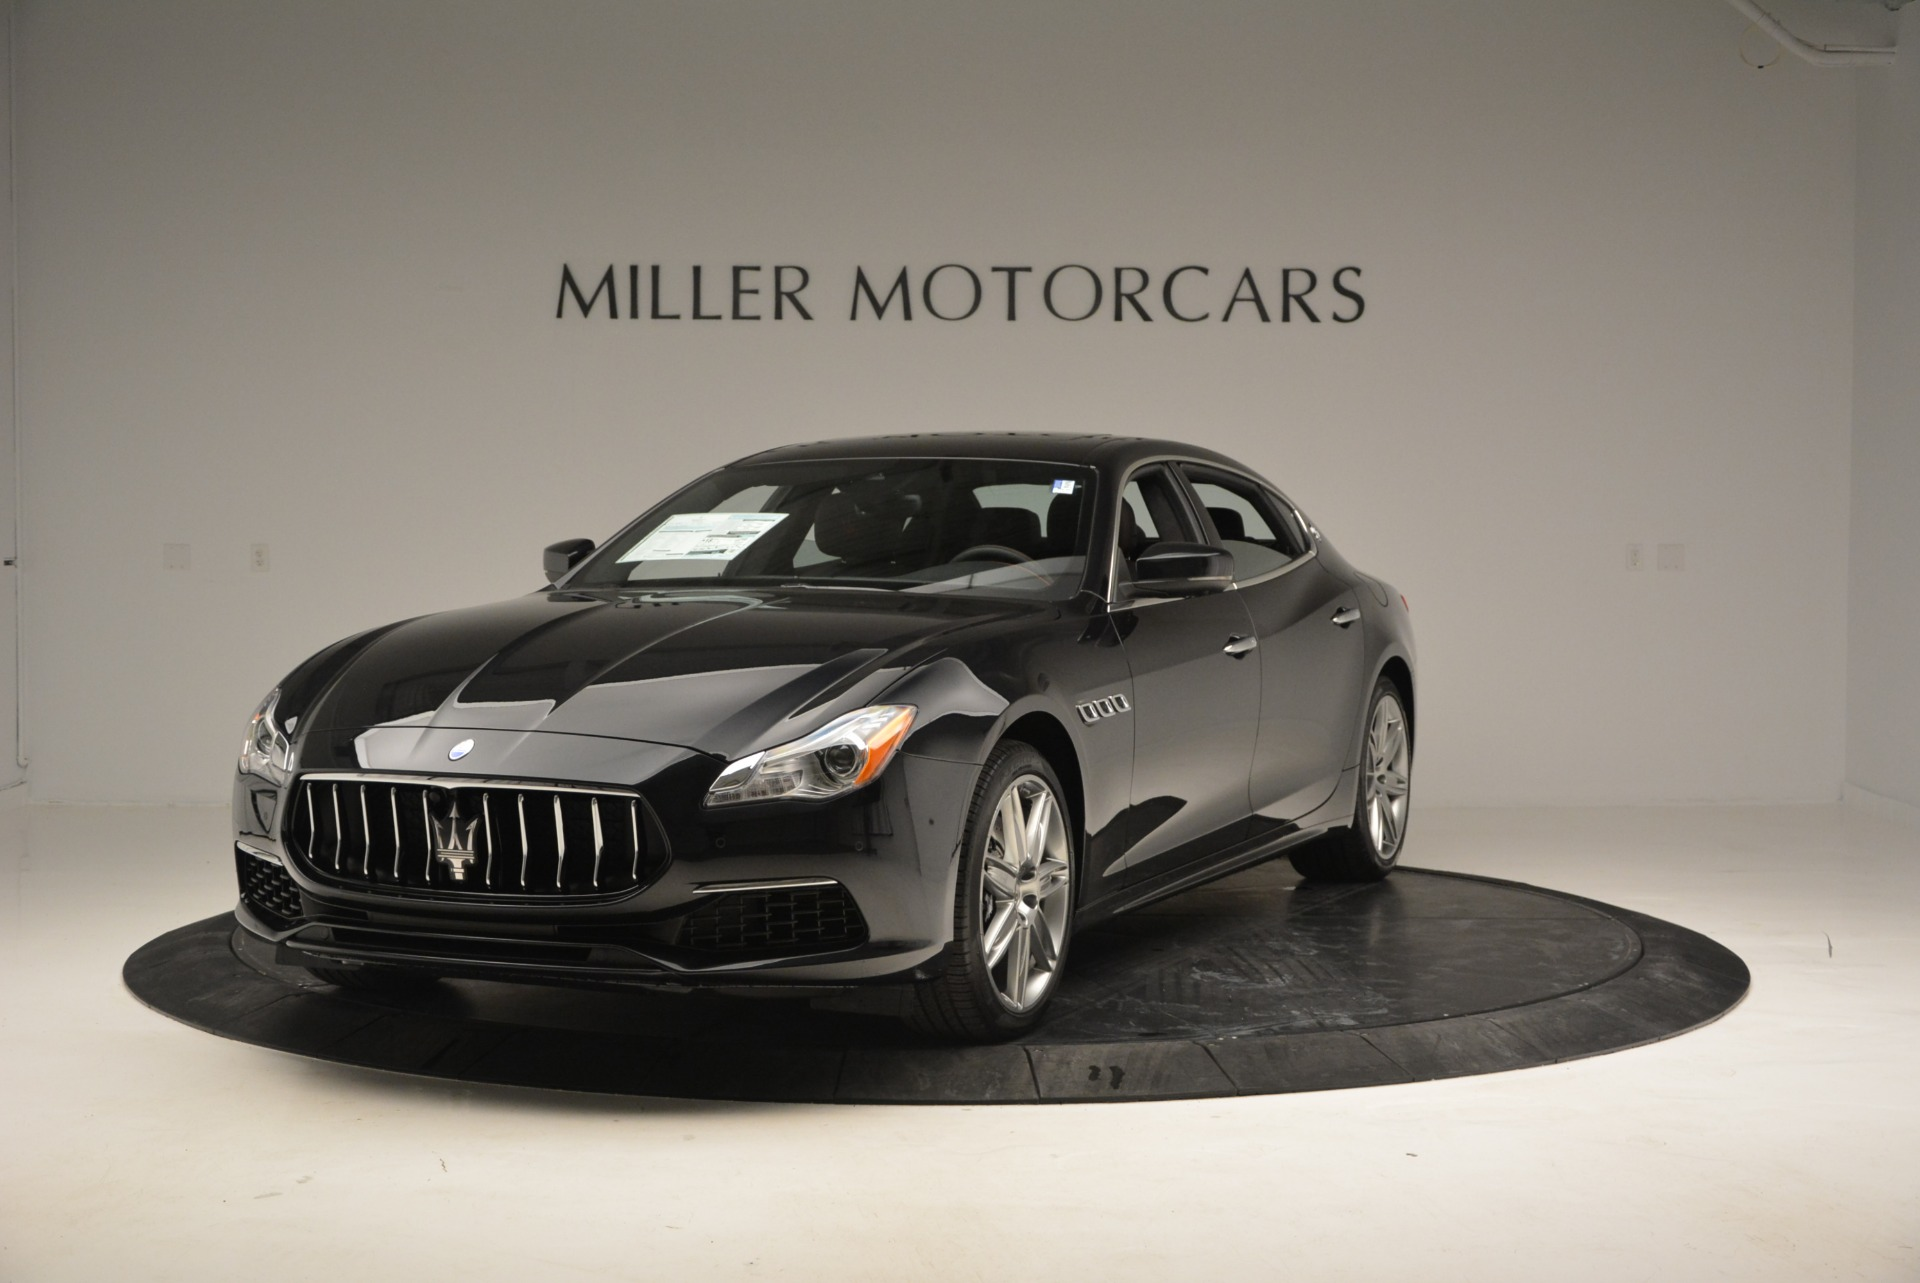 New 2017 Maserati Quattroporte S Q4 GranLusso For Sale In Westport, CT 777_main